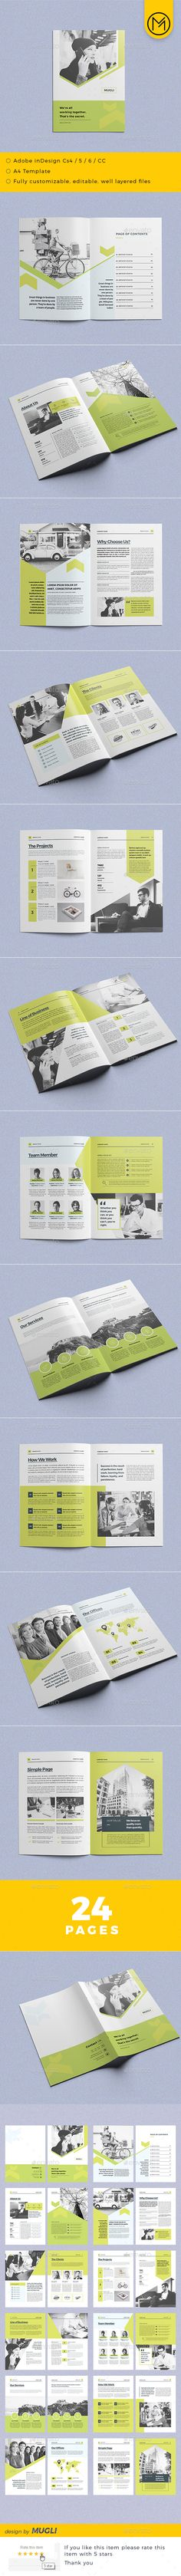 #Corporate #Brochure - Corporate Brochures Download here: https://graphicriver.net/item/corporate-brochure/19316412?ref=alena994